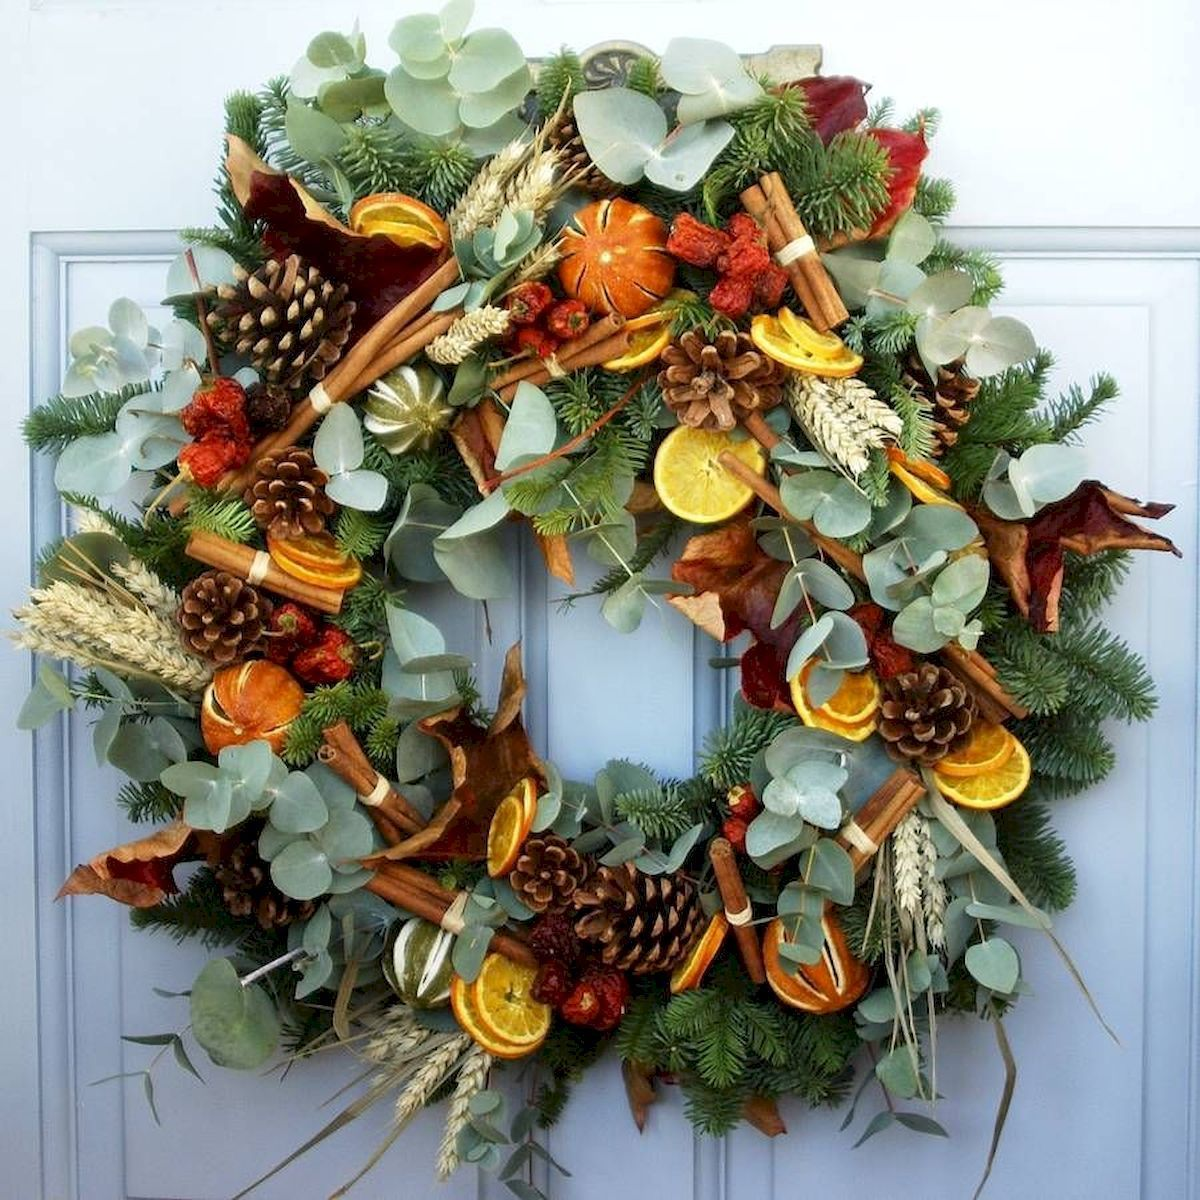 Gorgeous Christmas Wreath Ideas 19 Home Design With Images